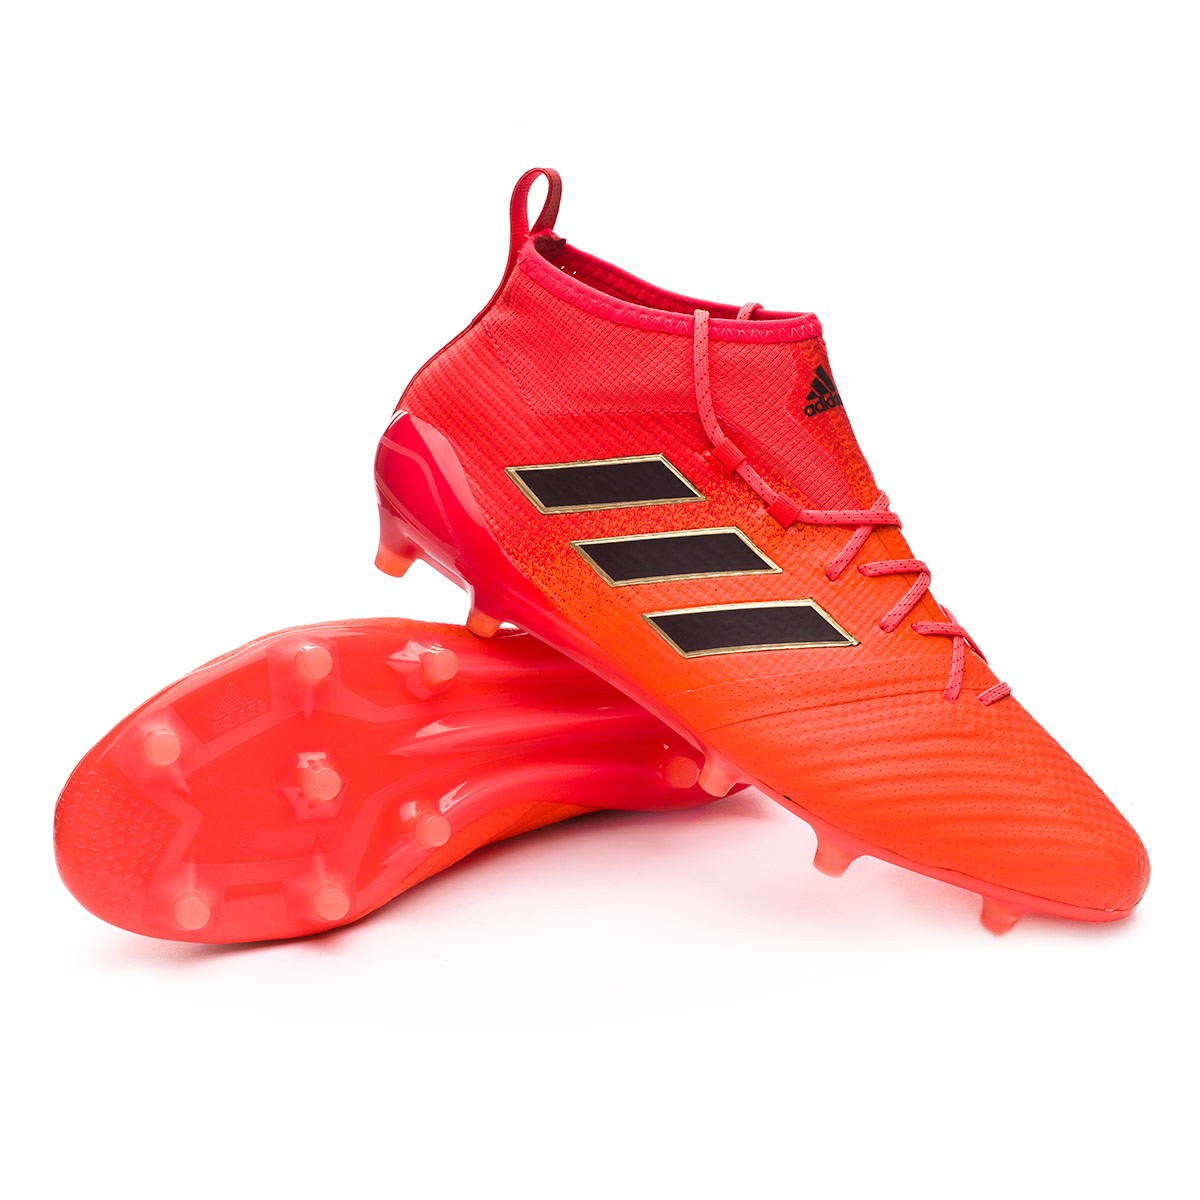 Boot adidas Ace 17.1 Primeknit FG Solar orange-Core black-Solar red ... b53dd0919c51